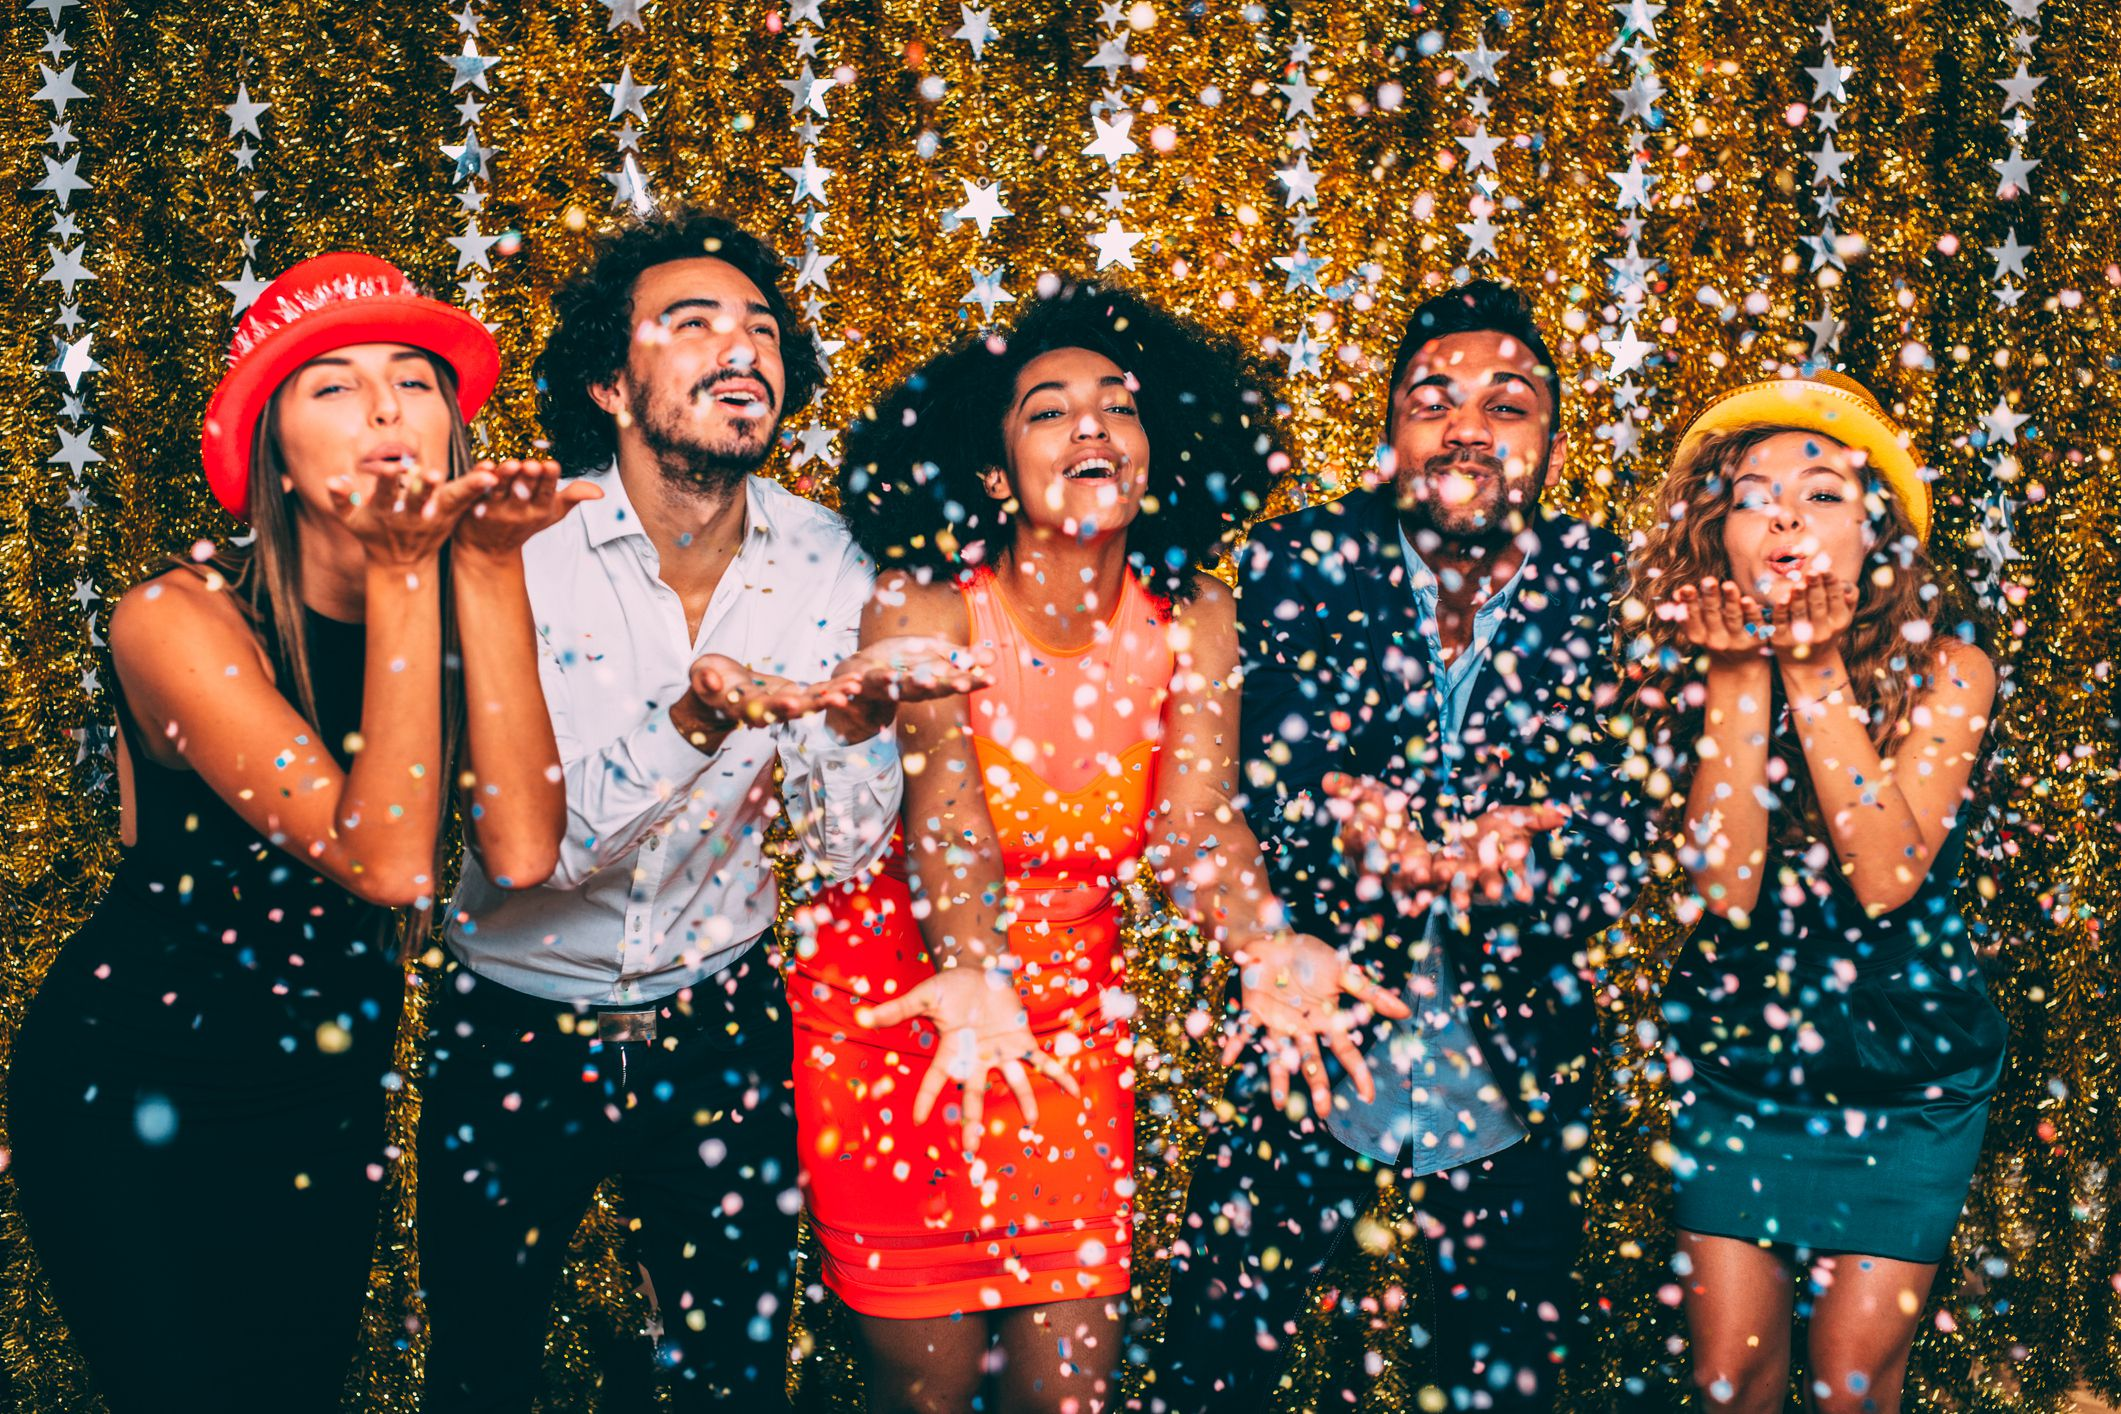 A group of young adults celebrate New Year's Eve